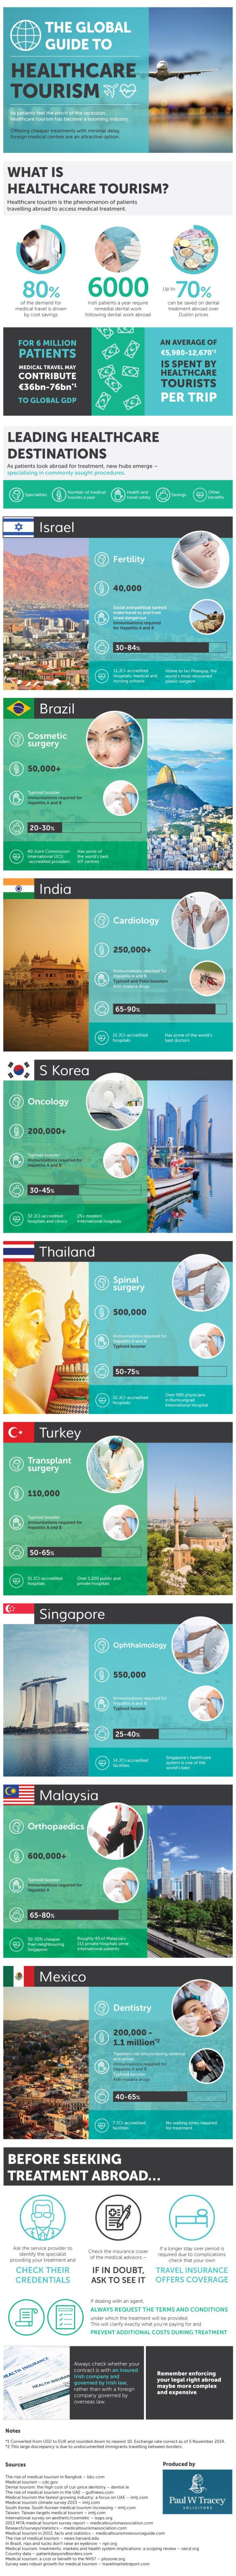 Healthcare Tourism: Country-Wise Guide - Infographic